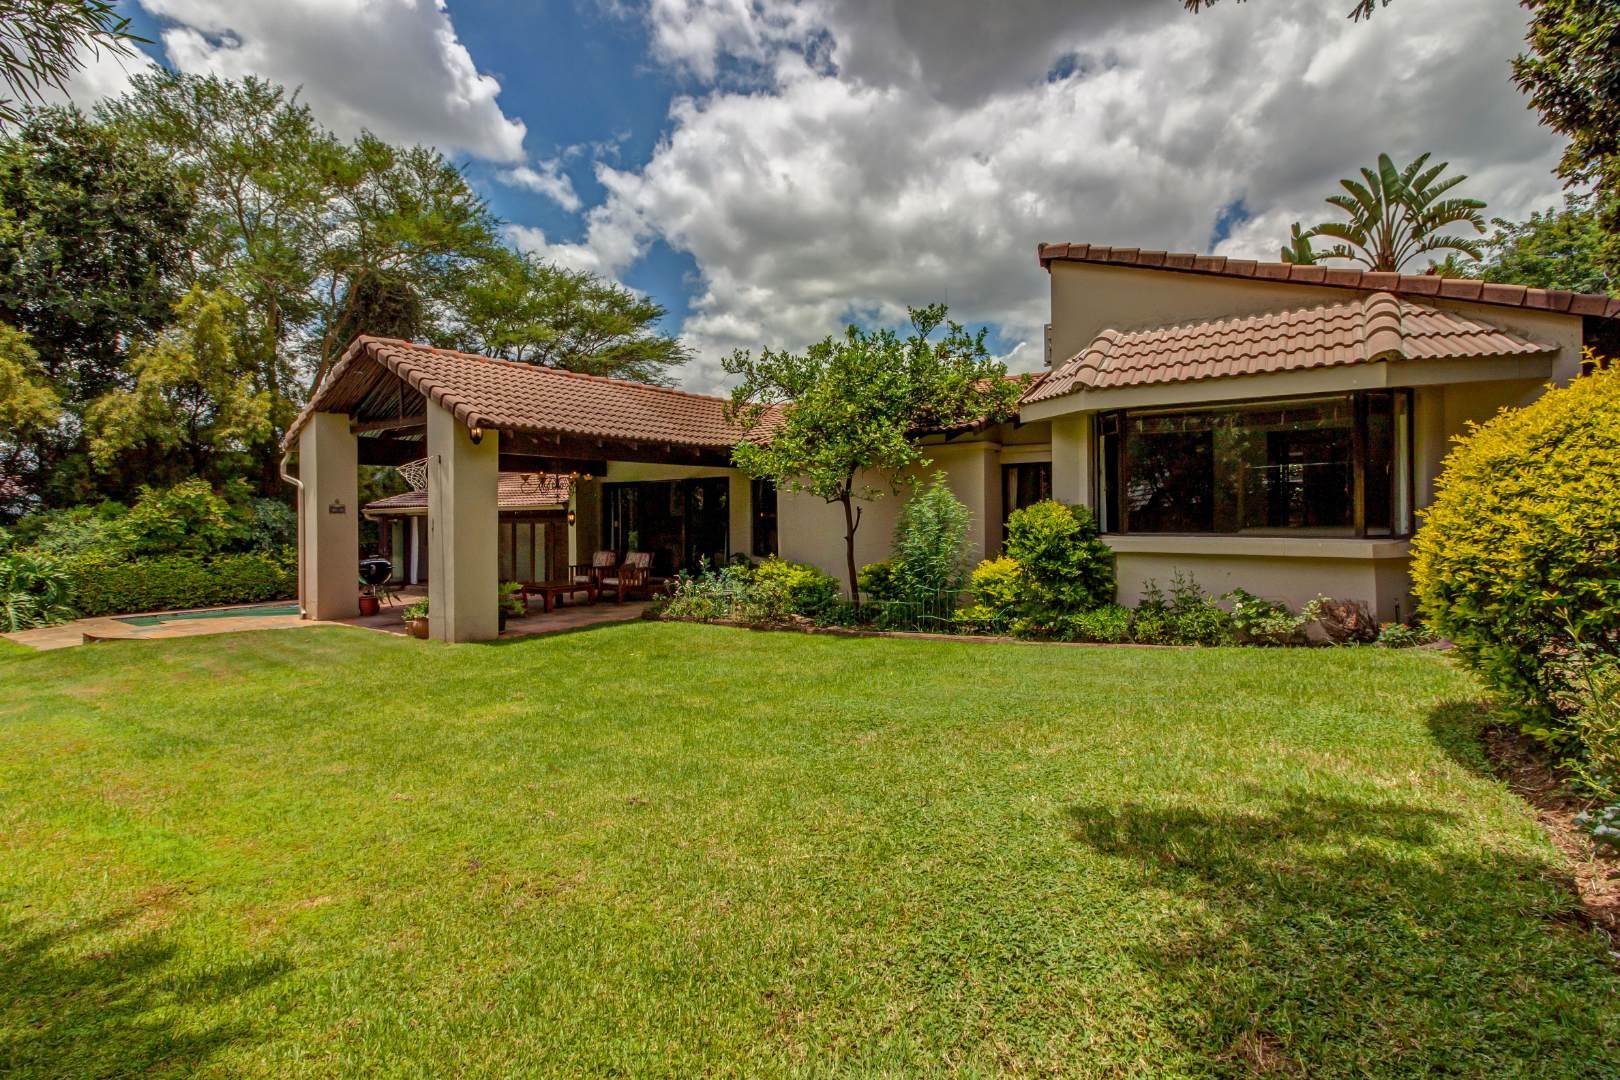 4 Bedroom House For Sale in Fourways